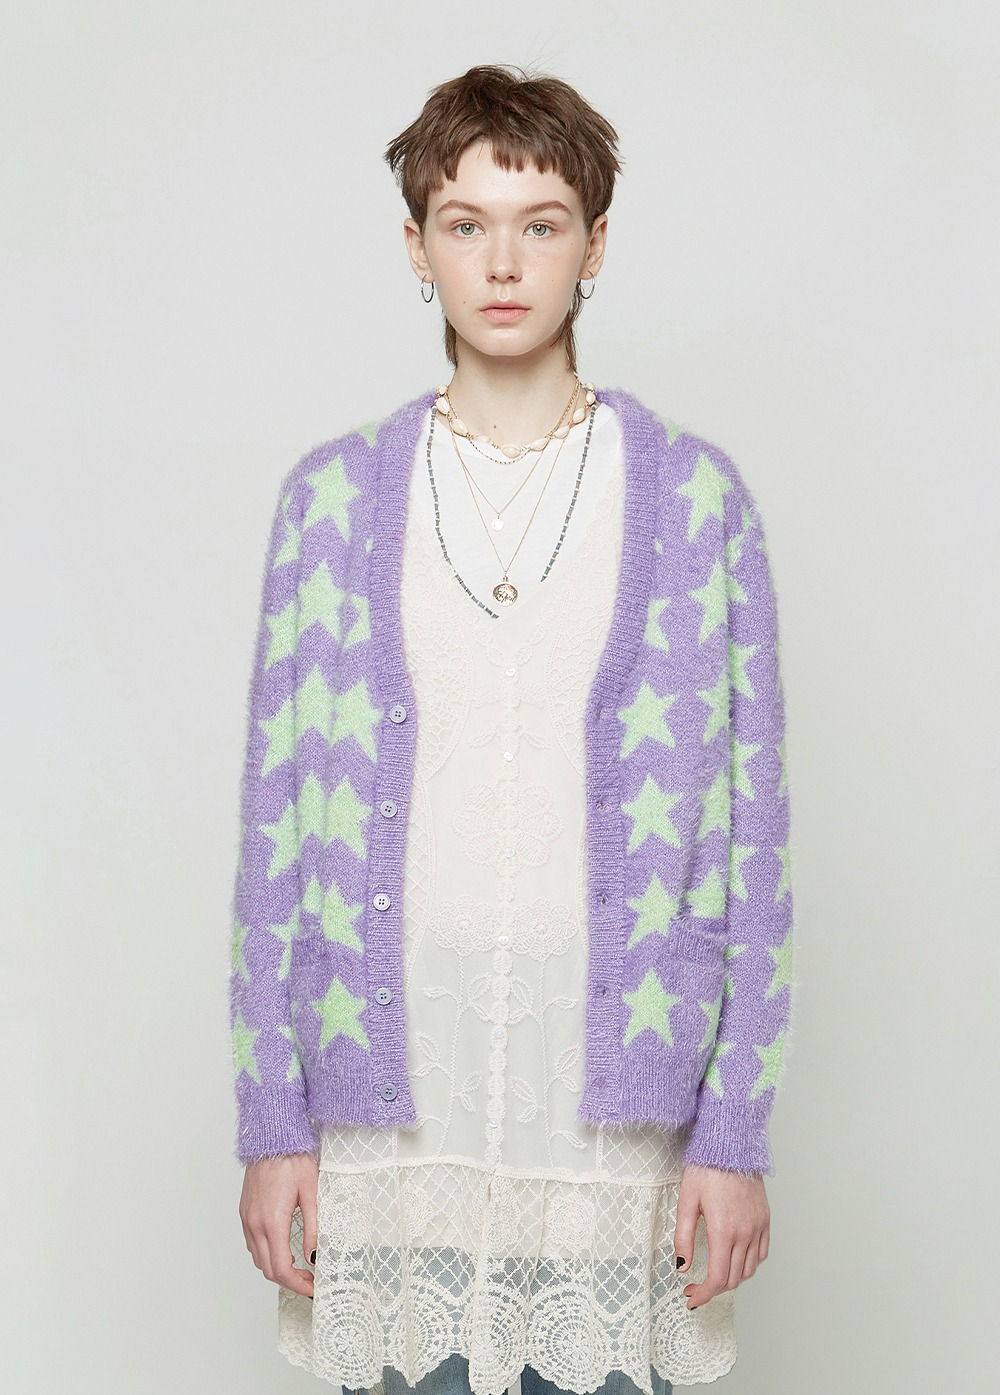 KANCO STAR CARDIGAN powder purple/green